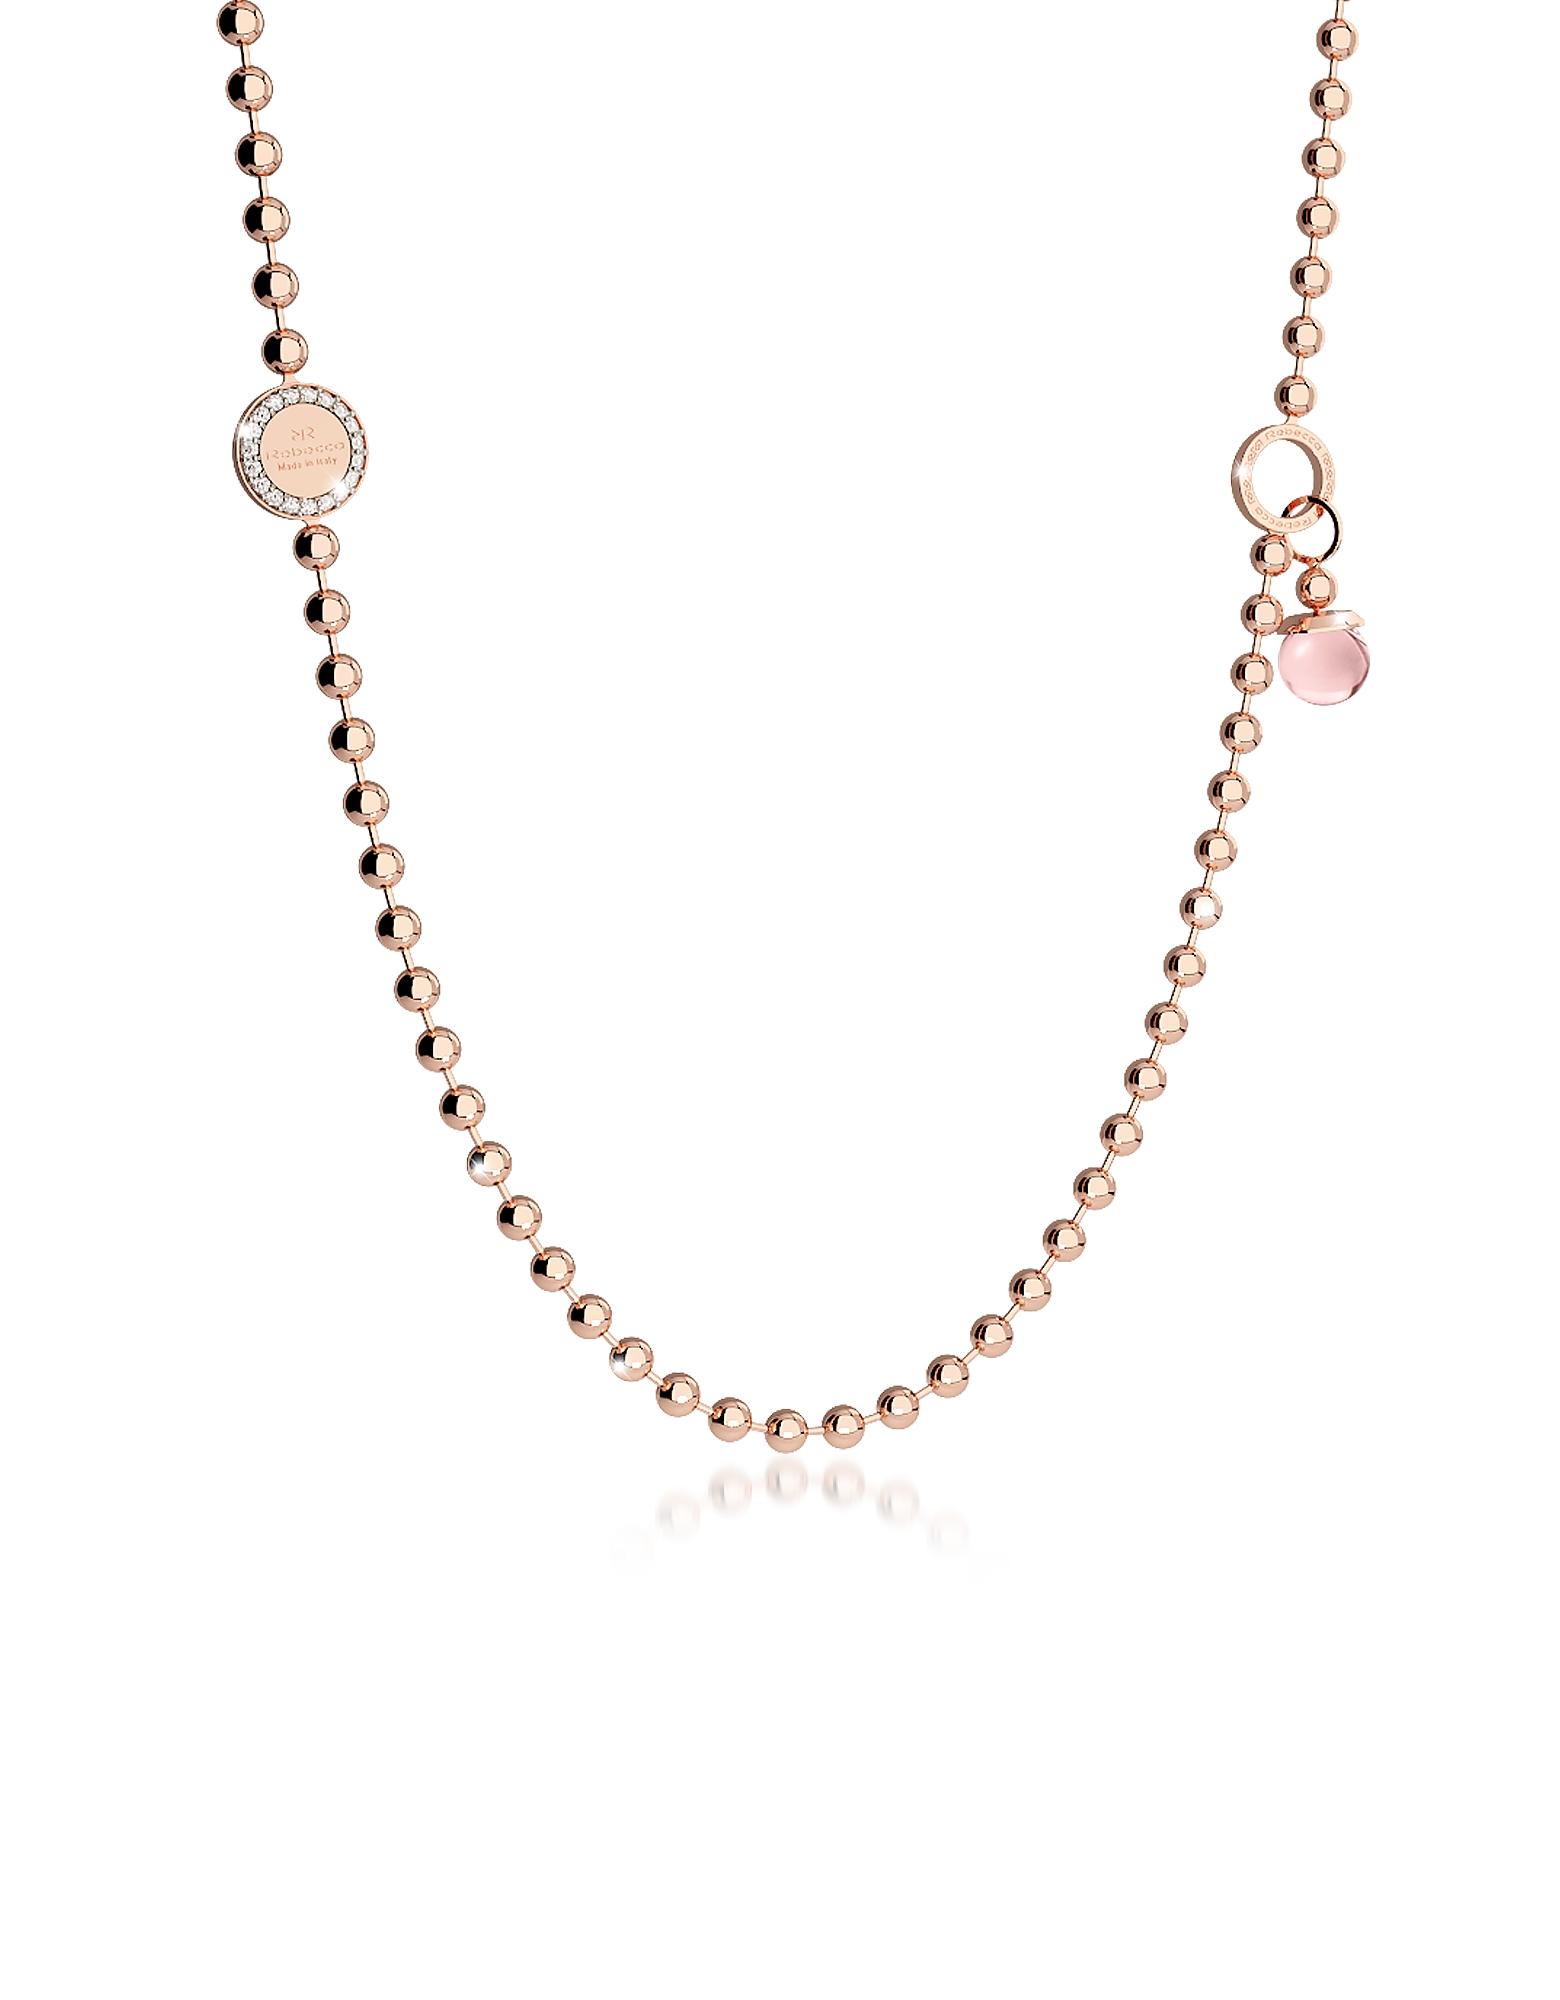 Rebecca Necklaces, Boulevard Stone Rose Gold Over Bronze Necklace w/Double Charms